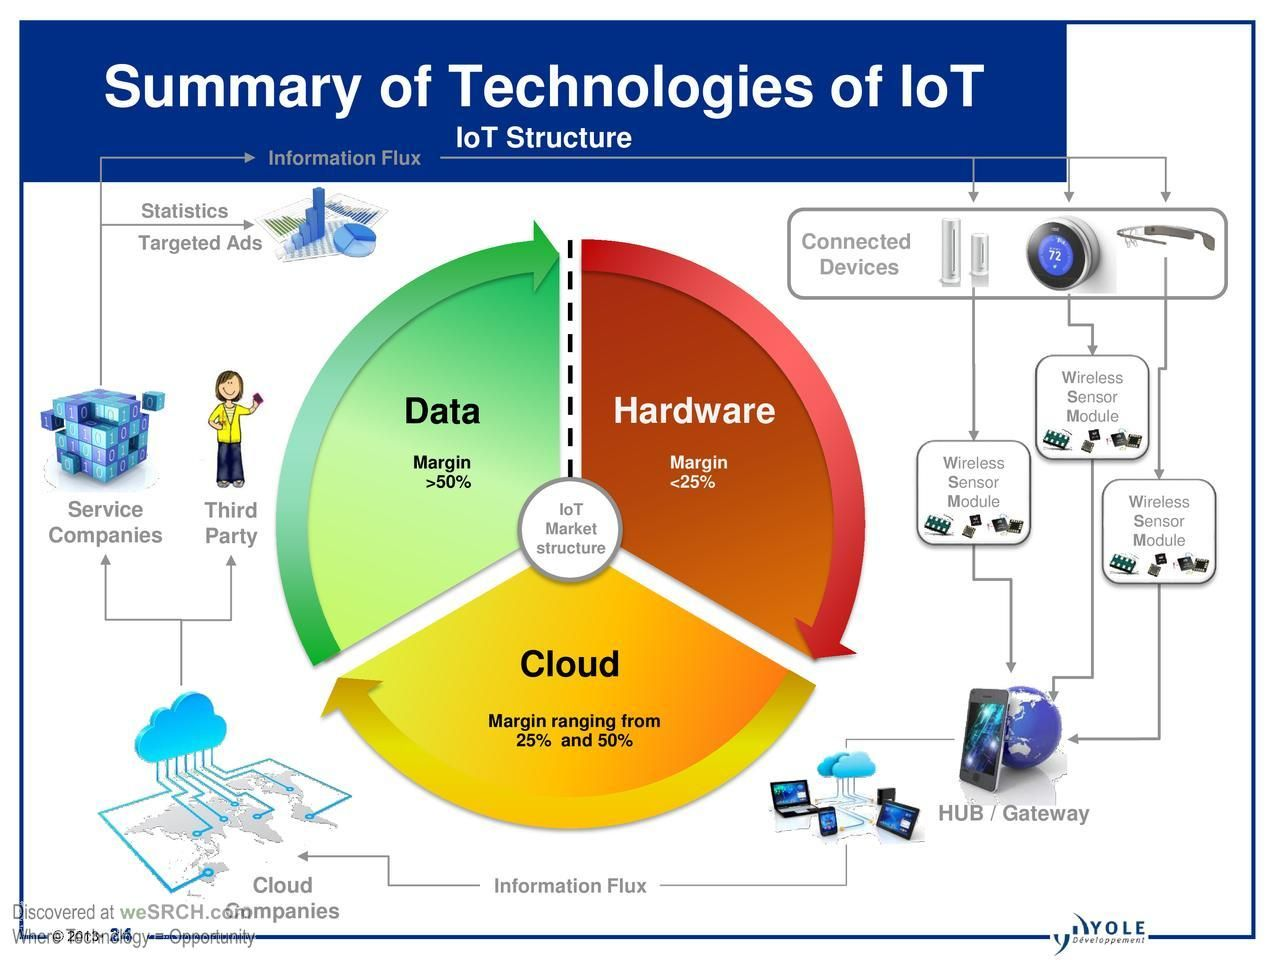 Present Your Electronics Research And Development Wesrch Iot Sensors Technology Network Performance